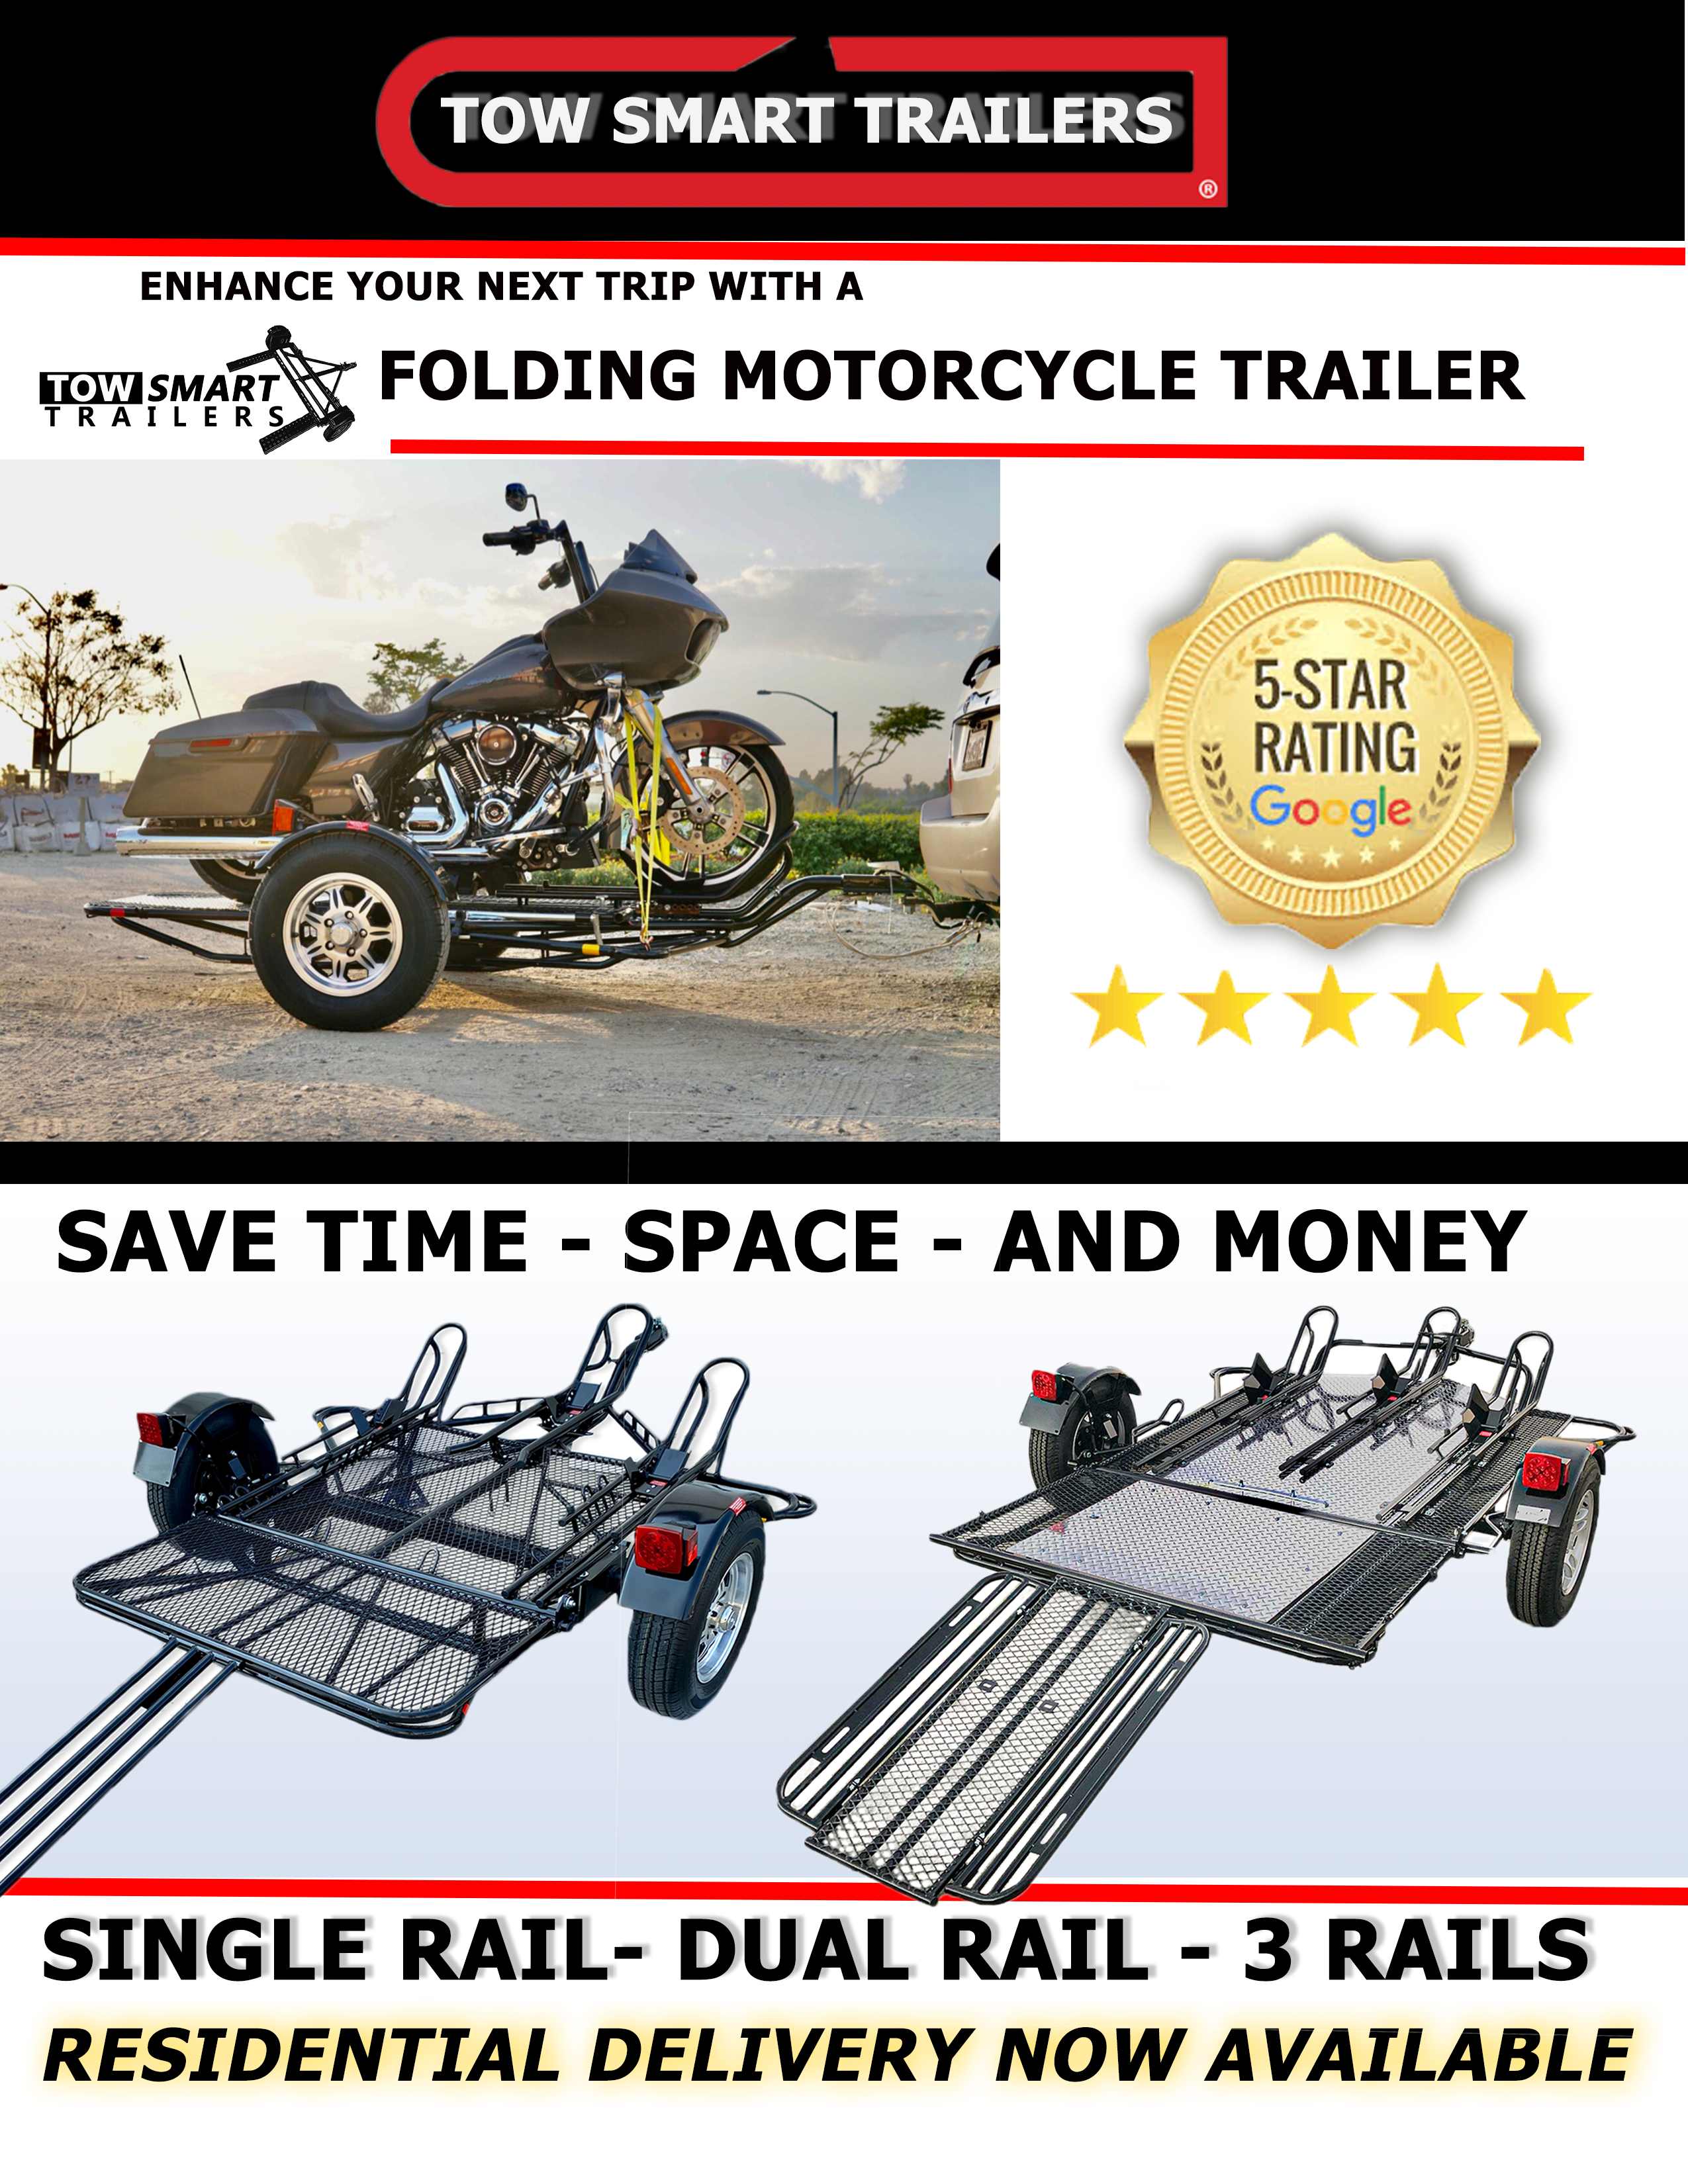 motorcycle trailer- tow smart trailers collection page - kendon motorcycle trailers